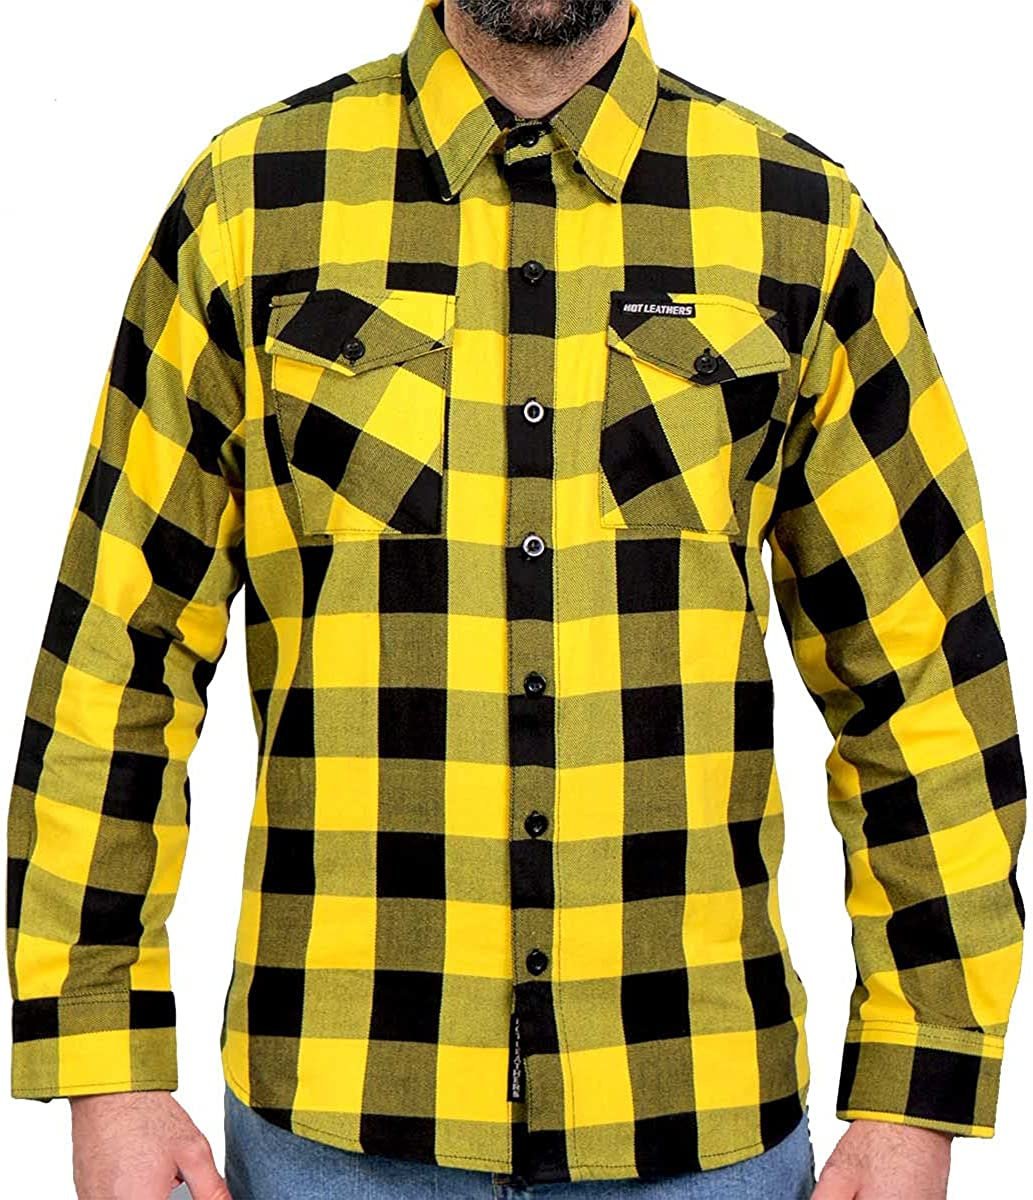 Hot Leathers FLM2014 Men's 'Gold and Black' Flannel Long Sleeve Shirt